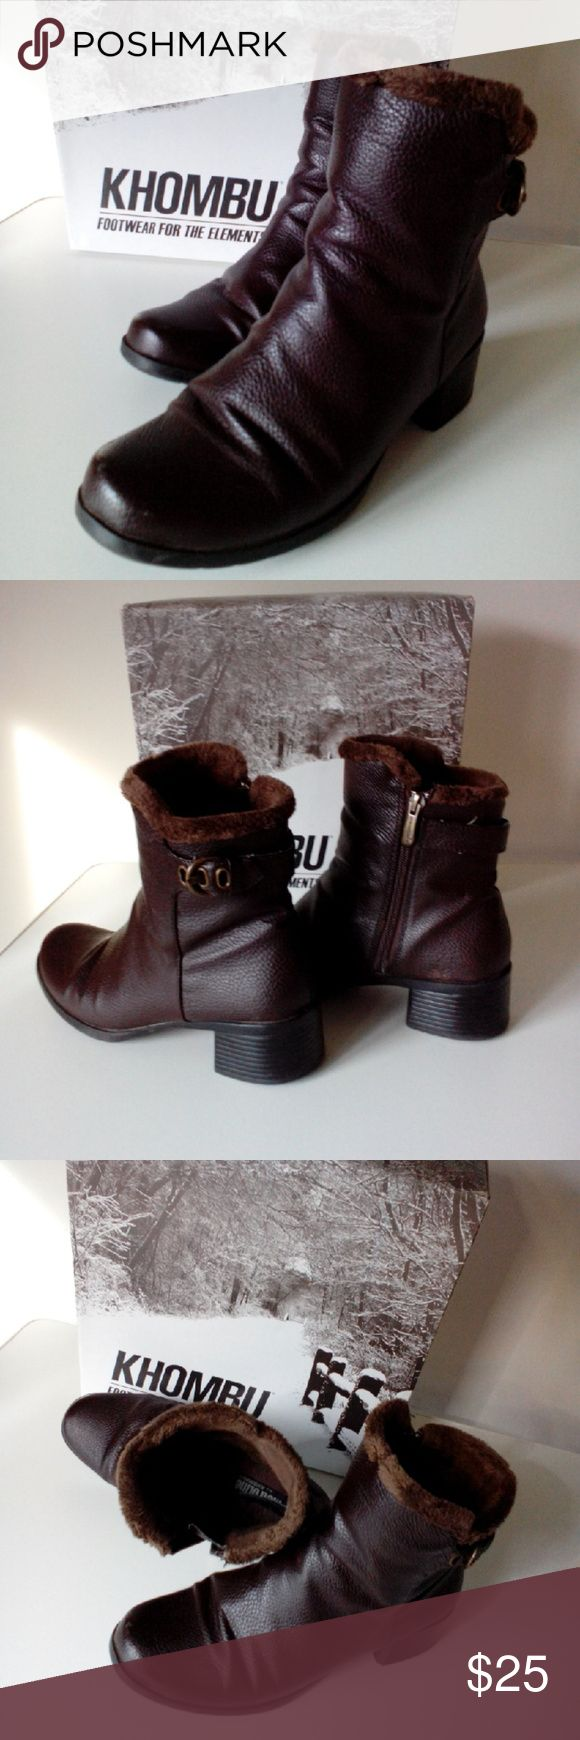 """KHOMBU BOOTS KHOMBU ankle boots footwear for the elements. Brown with inside zippers and outside adjustable buckle detail. Faux fur lined. All man-made materials. Heel height approximately 1 3/4"""" Khombu Shoes Ankle Boots & Booties"""